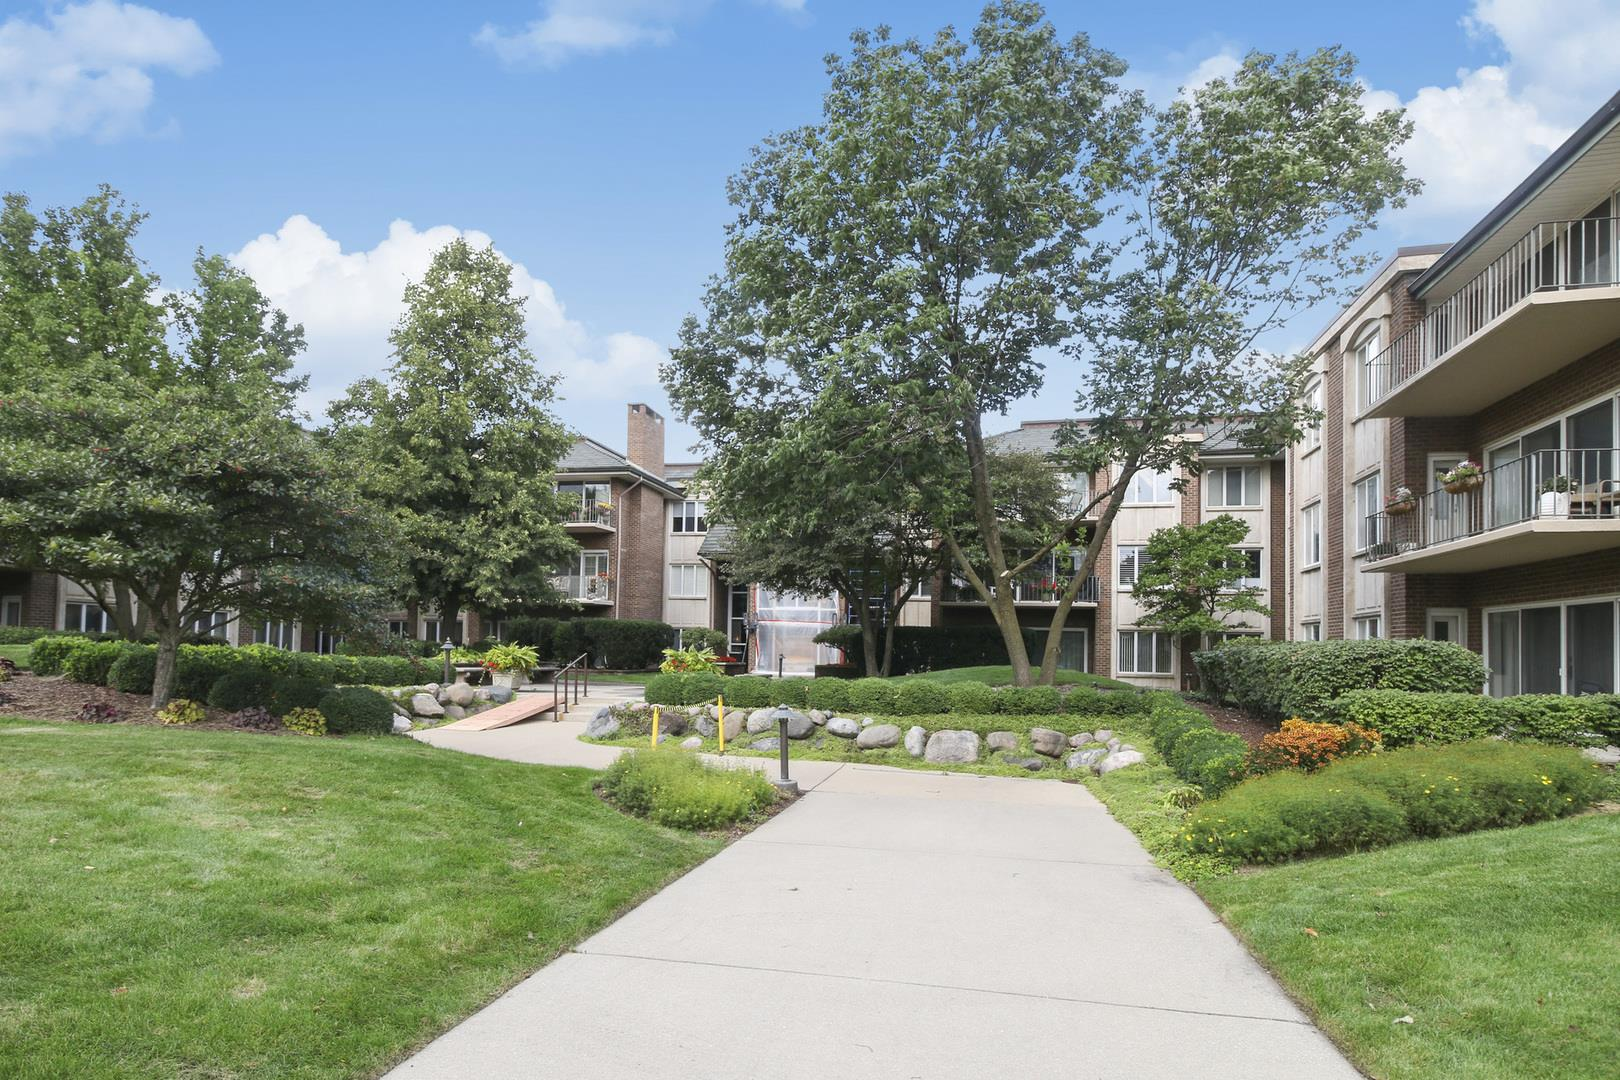 3 Oak Brook Club Drive #D303, Oak Brook, IL 60523 - #: 10581581